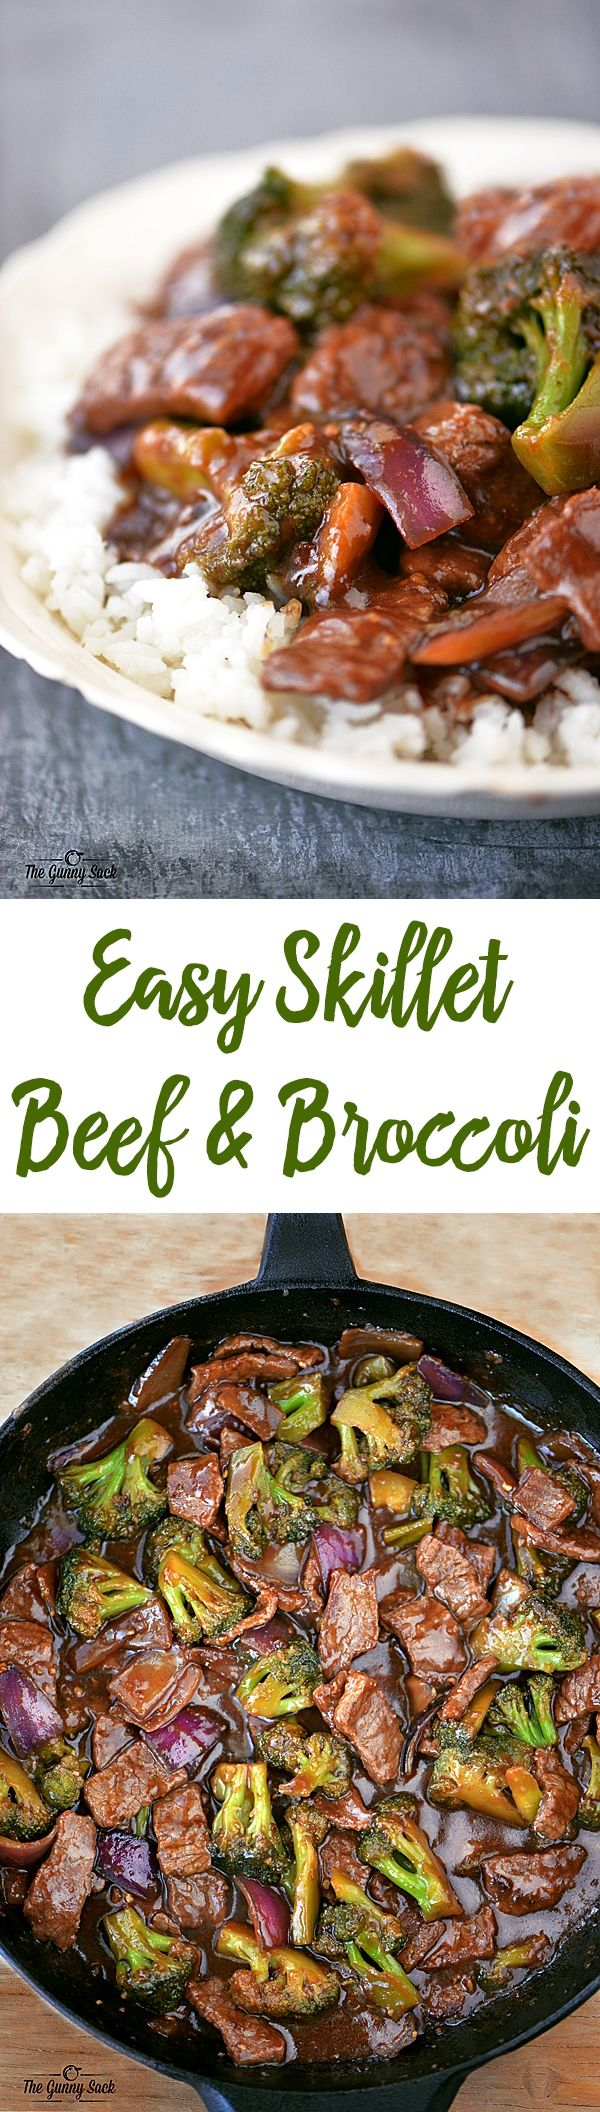 This Easy Skillet Beef and Broccoli recipe is better than take out and is ready\u2026 Visit https://gezondvoorstel.com for more tips, information and recipes about healthy food! #healthy #health #weightloss #loseweight #weightlossmotivation